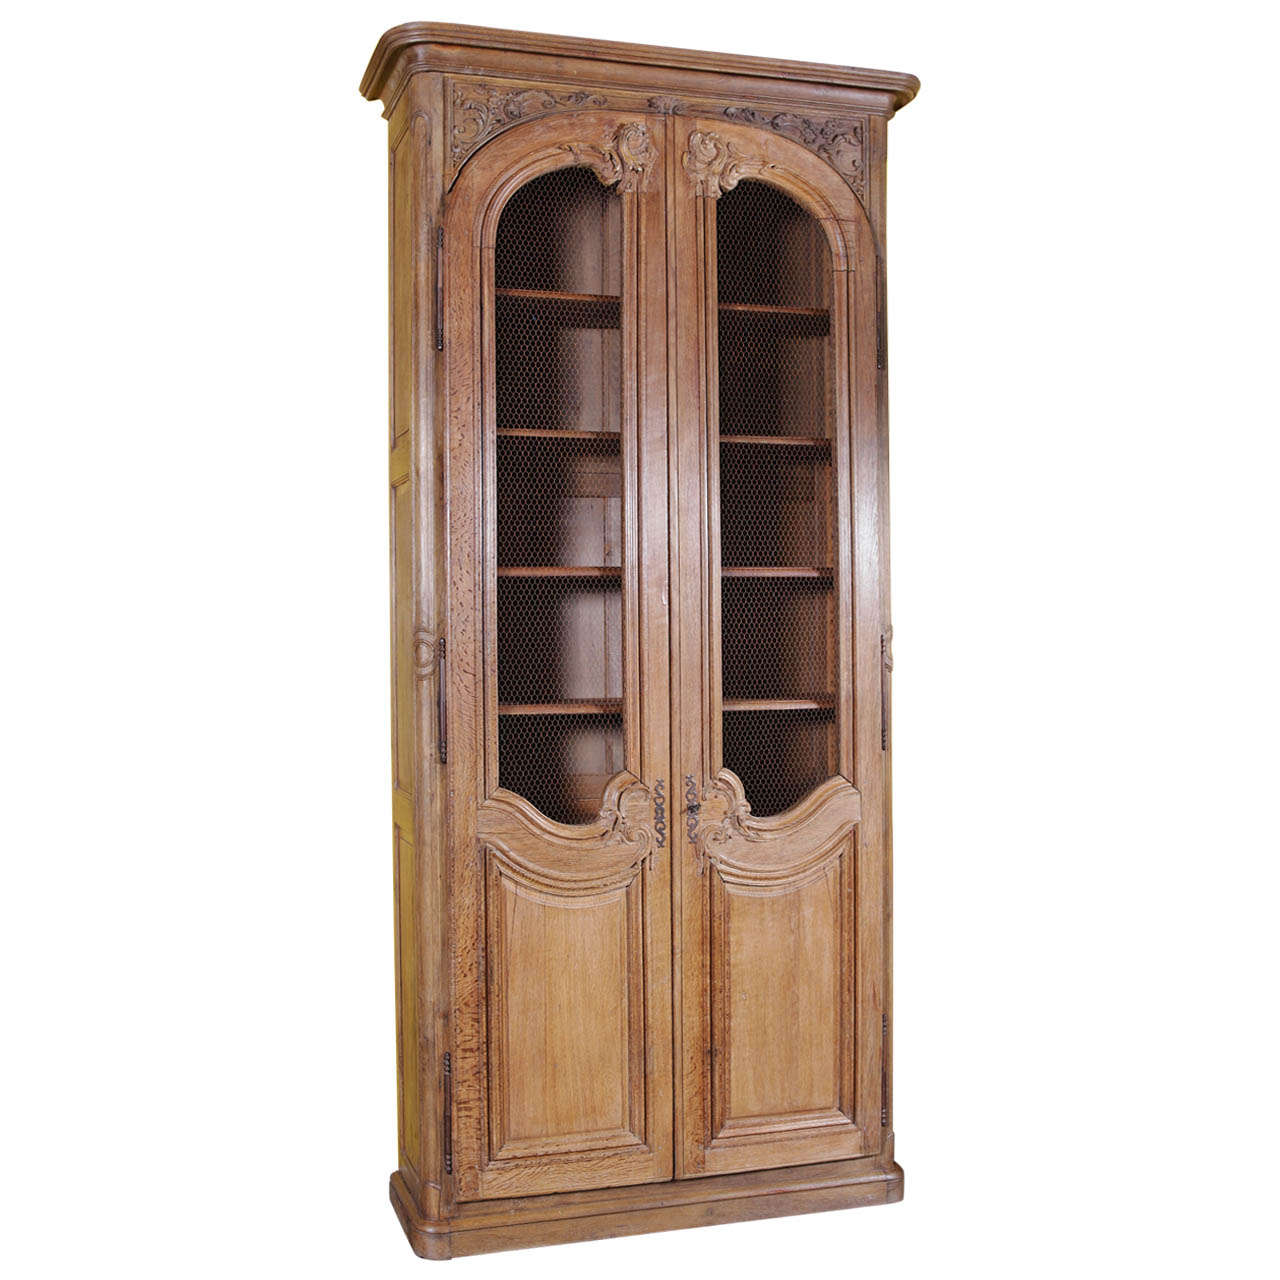 Tall antique parisian bookcase bibliotheque cabinet for sale at 1stdibs - Bibliotheque 6 cases ...